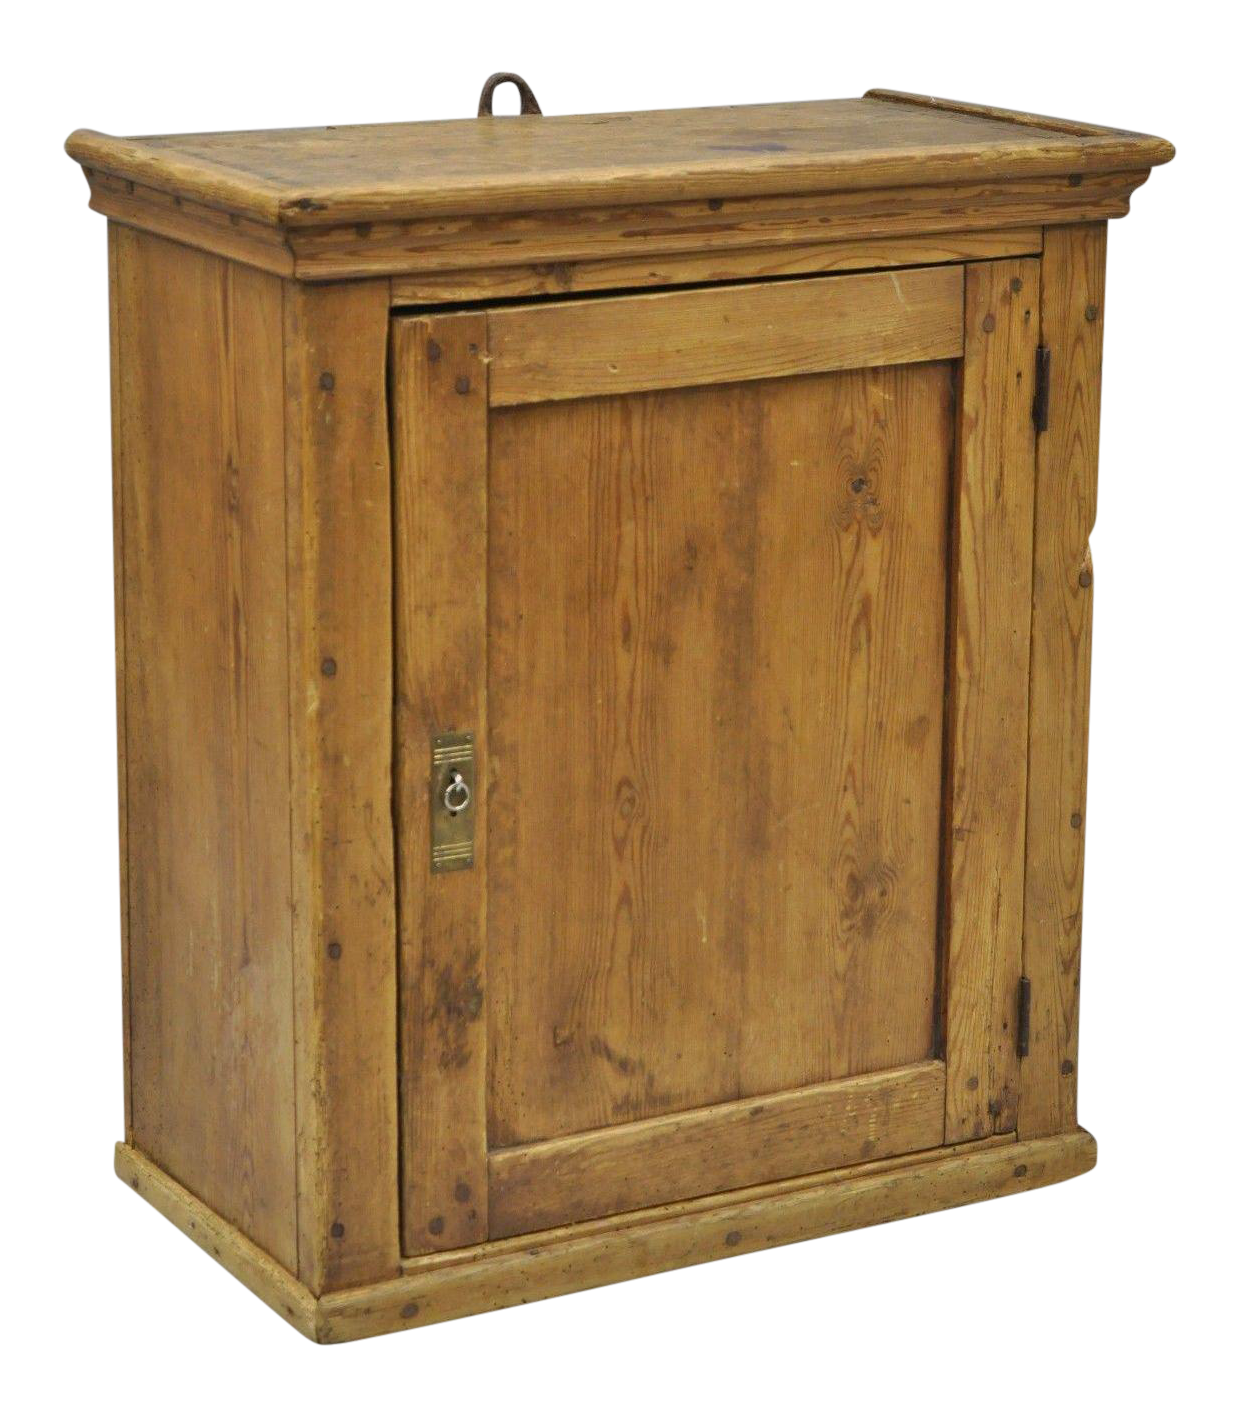 Superbe Antique Primitive Rustic Pine Wood Wall Hanging Cupboard Pantry Hutch |  Chairish